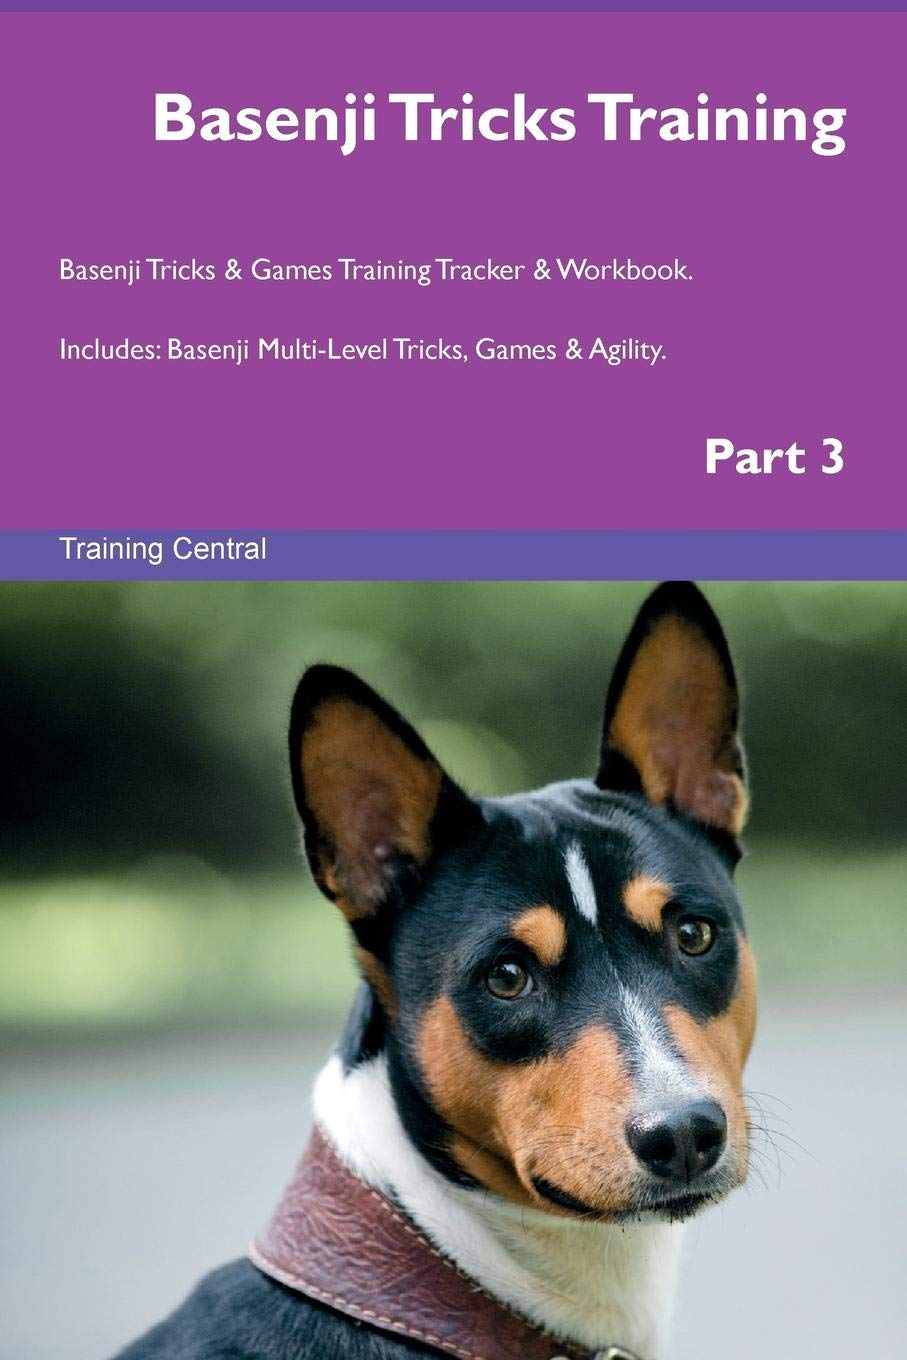 Basenji Tricks Training Basenji Tricks & Games Training Tracker & Workbook.  Includes: Basenji Multi-Level Tricks, Games & Agility. Part 3